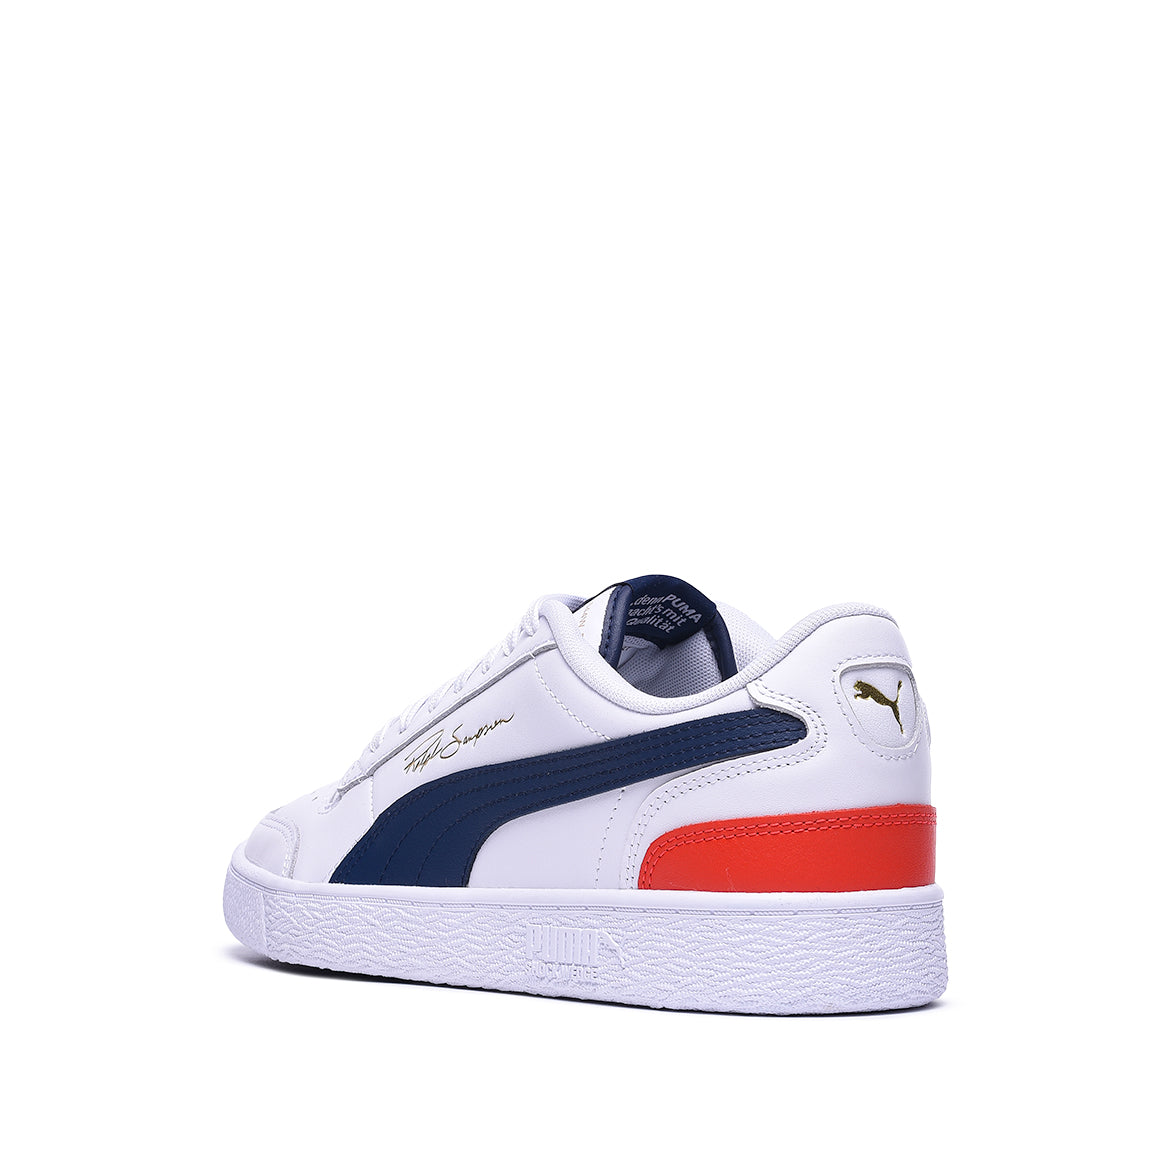 RALPH SAMPSON LO - WHITE / PEACOAT / RED